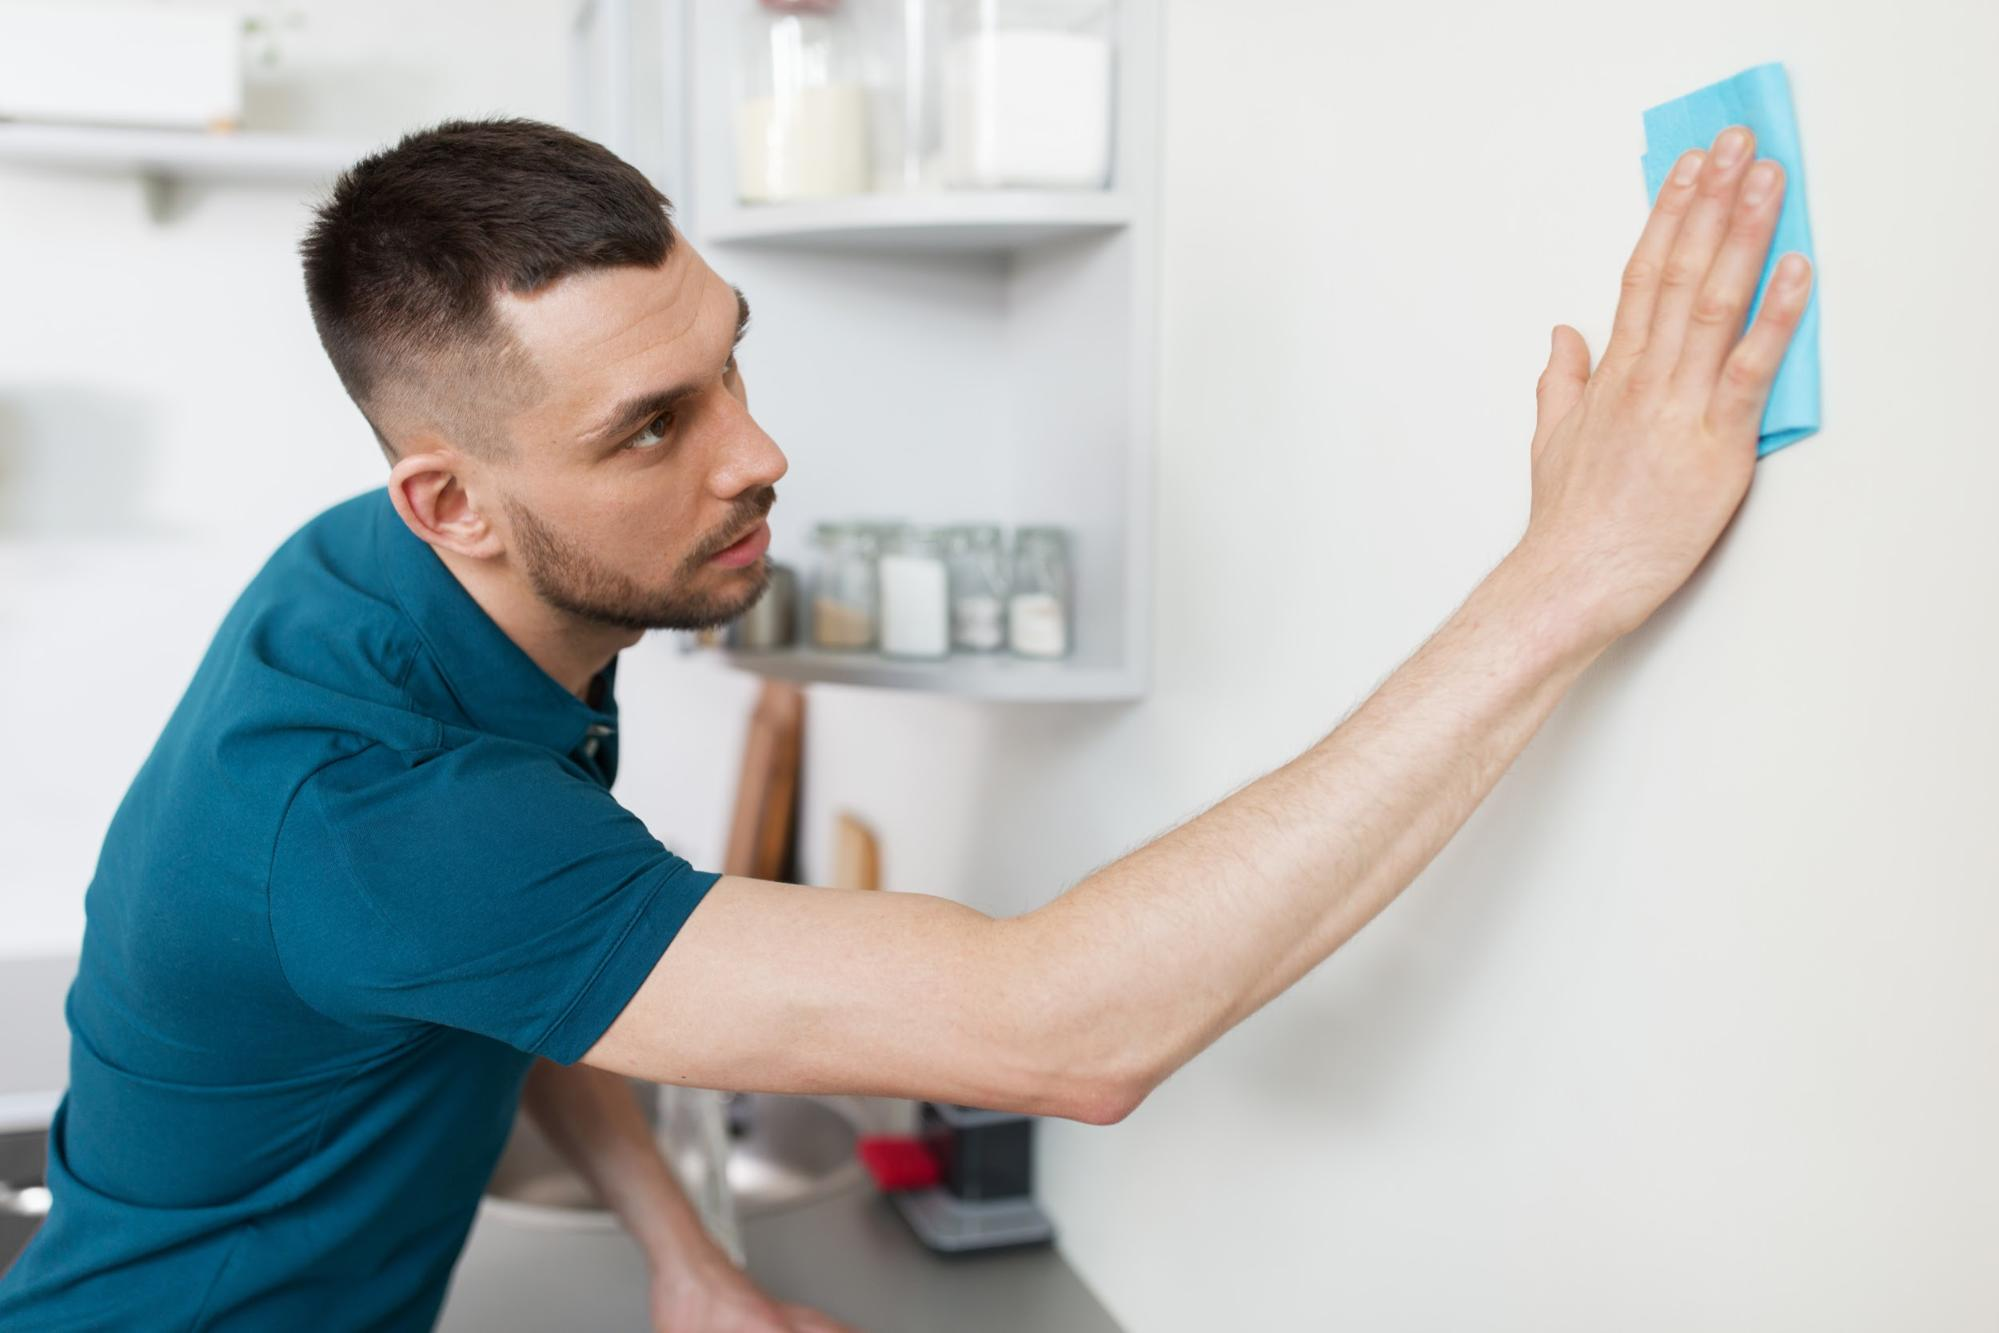 Man cleaning wall in home kitchen with blue microfiber cloth